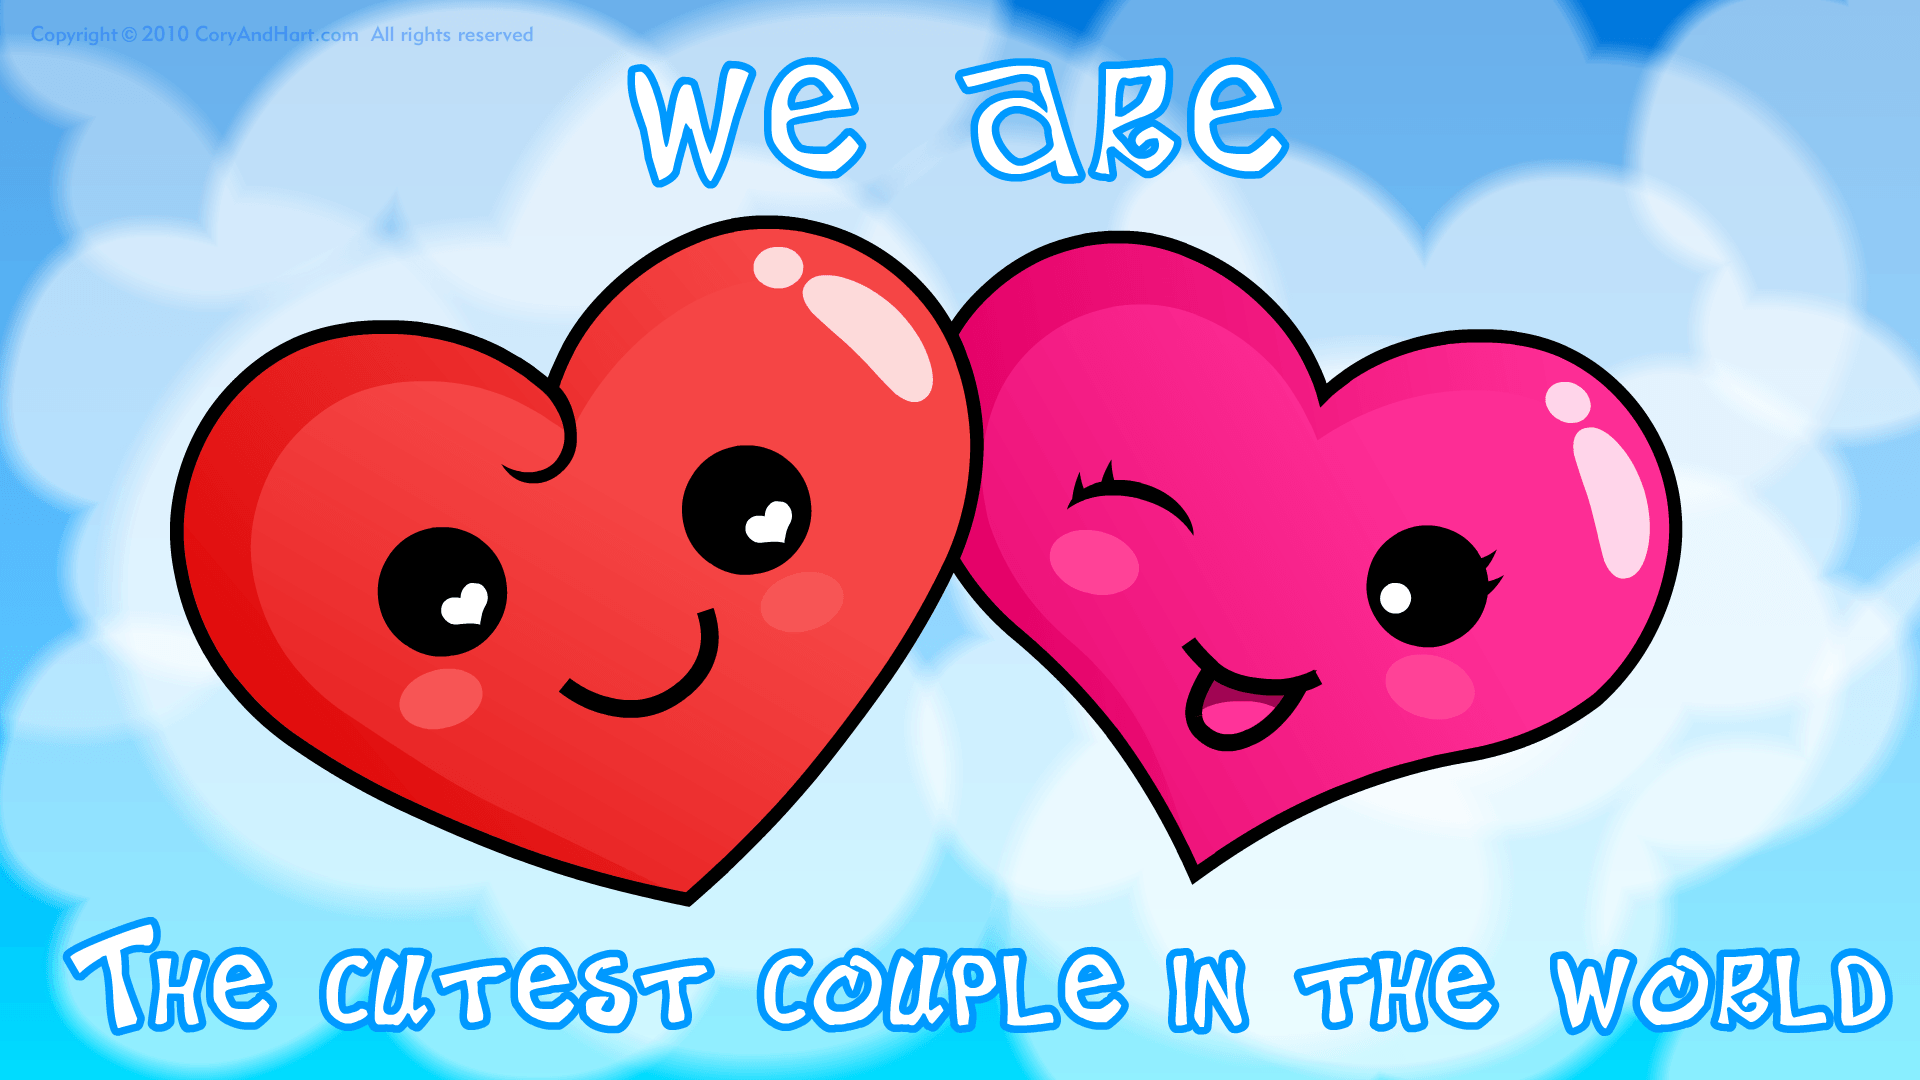 Sweet Love Animation Wallpaper : Free Love Wallpapers Gallery - Wallpaper cave